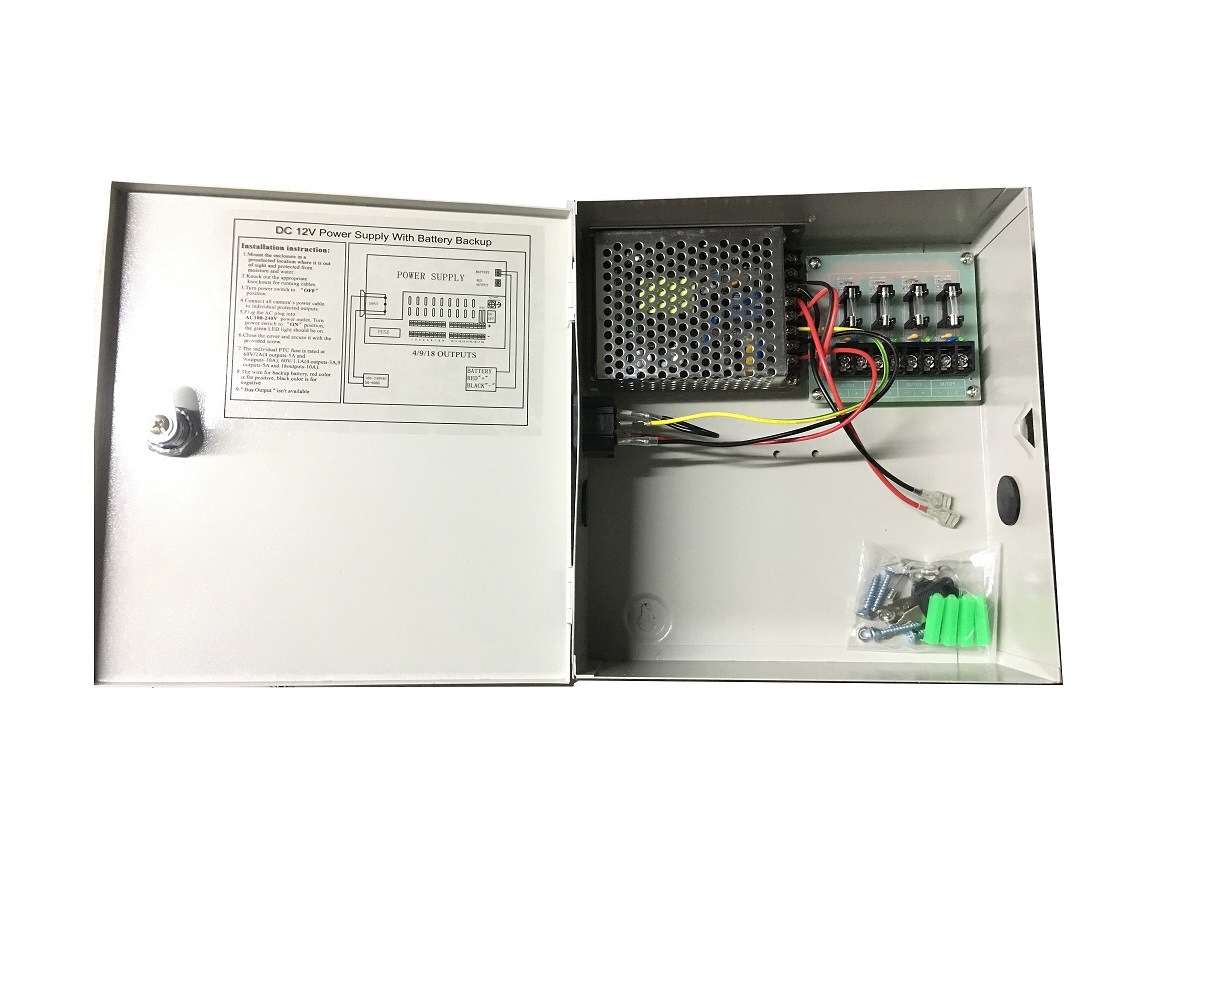 4CH 5AMP POWER SUPPLY ADAPTER BUILT IN PTC FUSE ADJUSTABLE OUTPUT VOLT CCTV